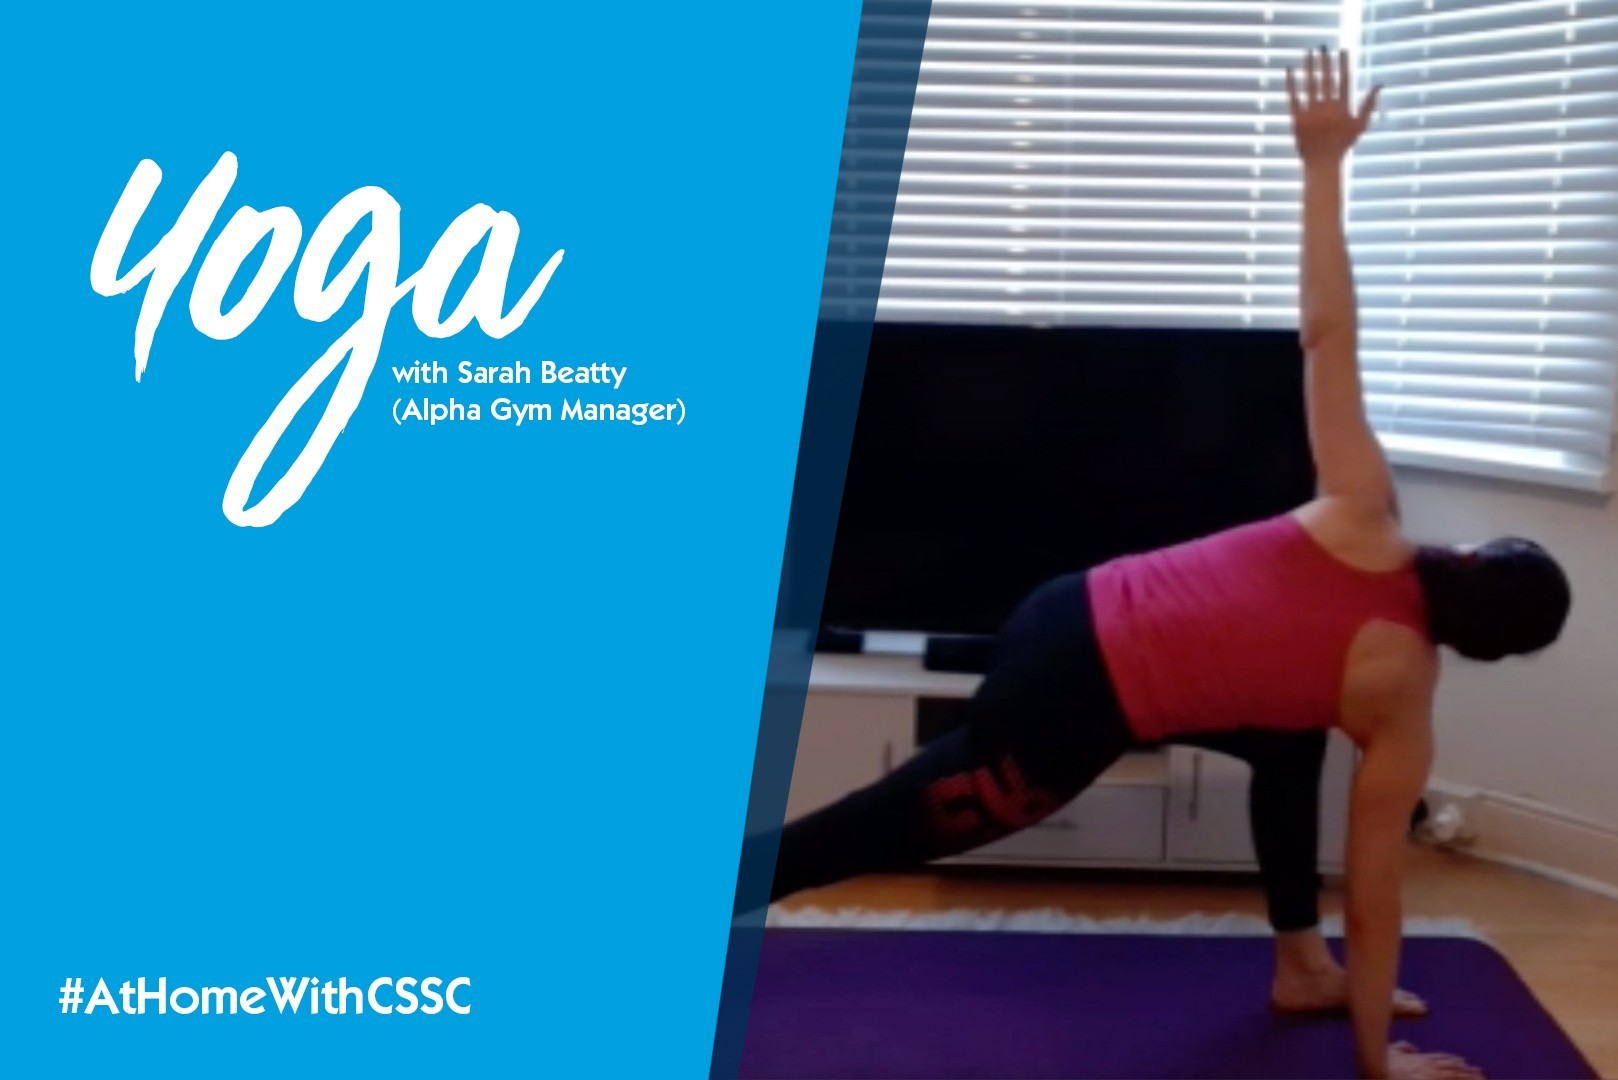 Yoga instructor taking a virtual class with a textual overlay cover the left side of the screen